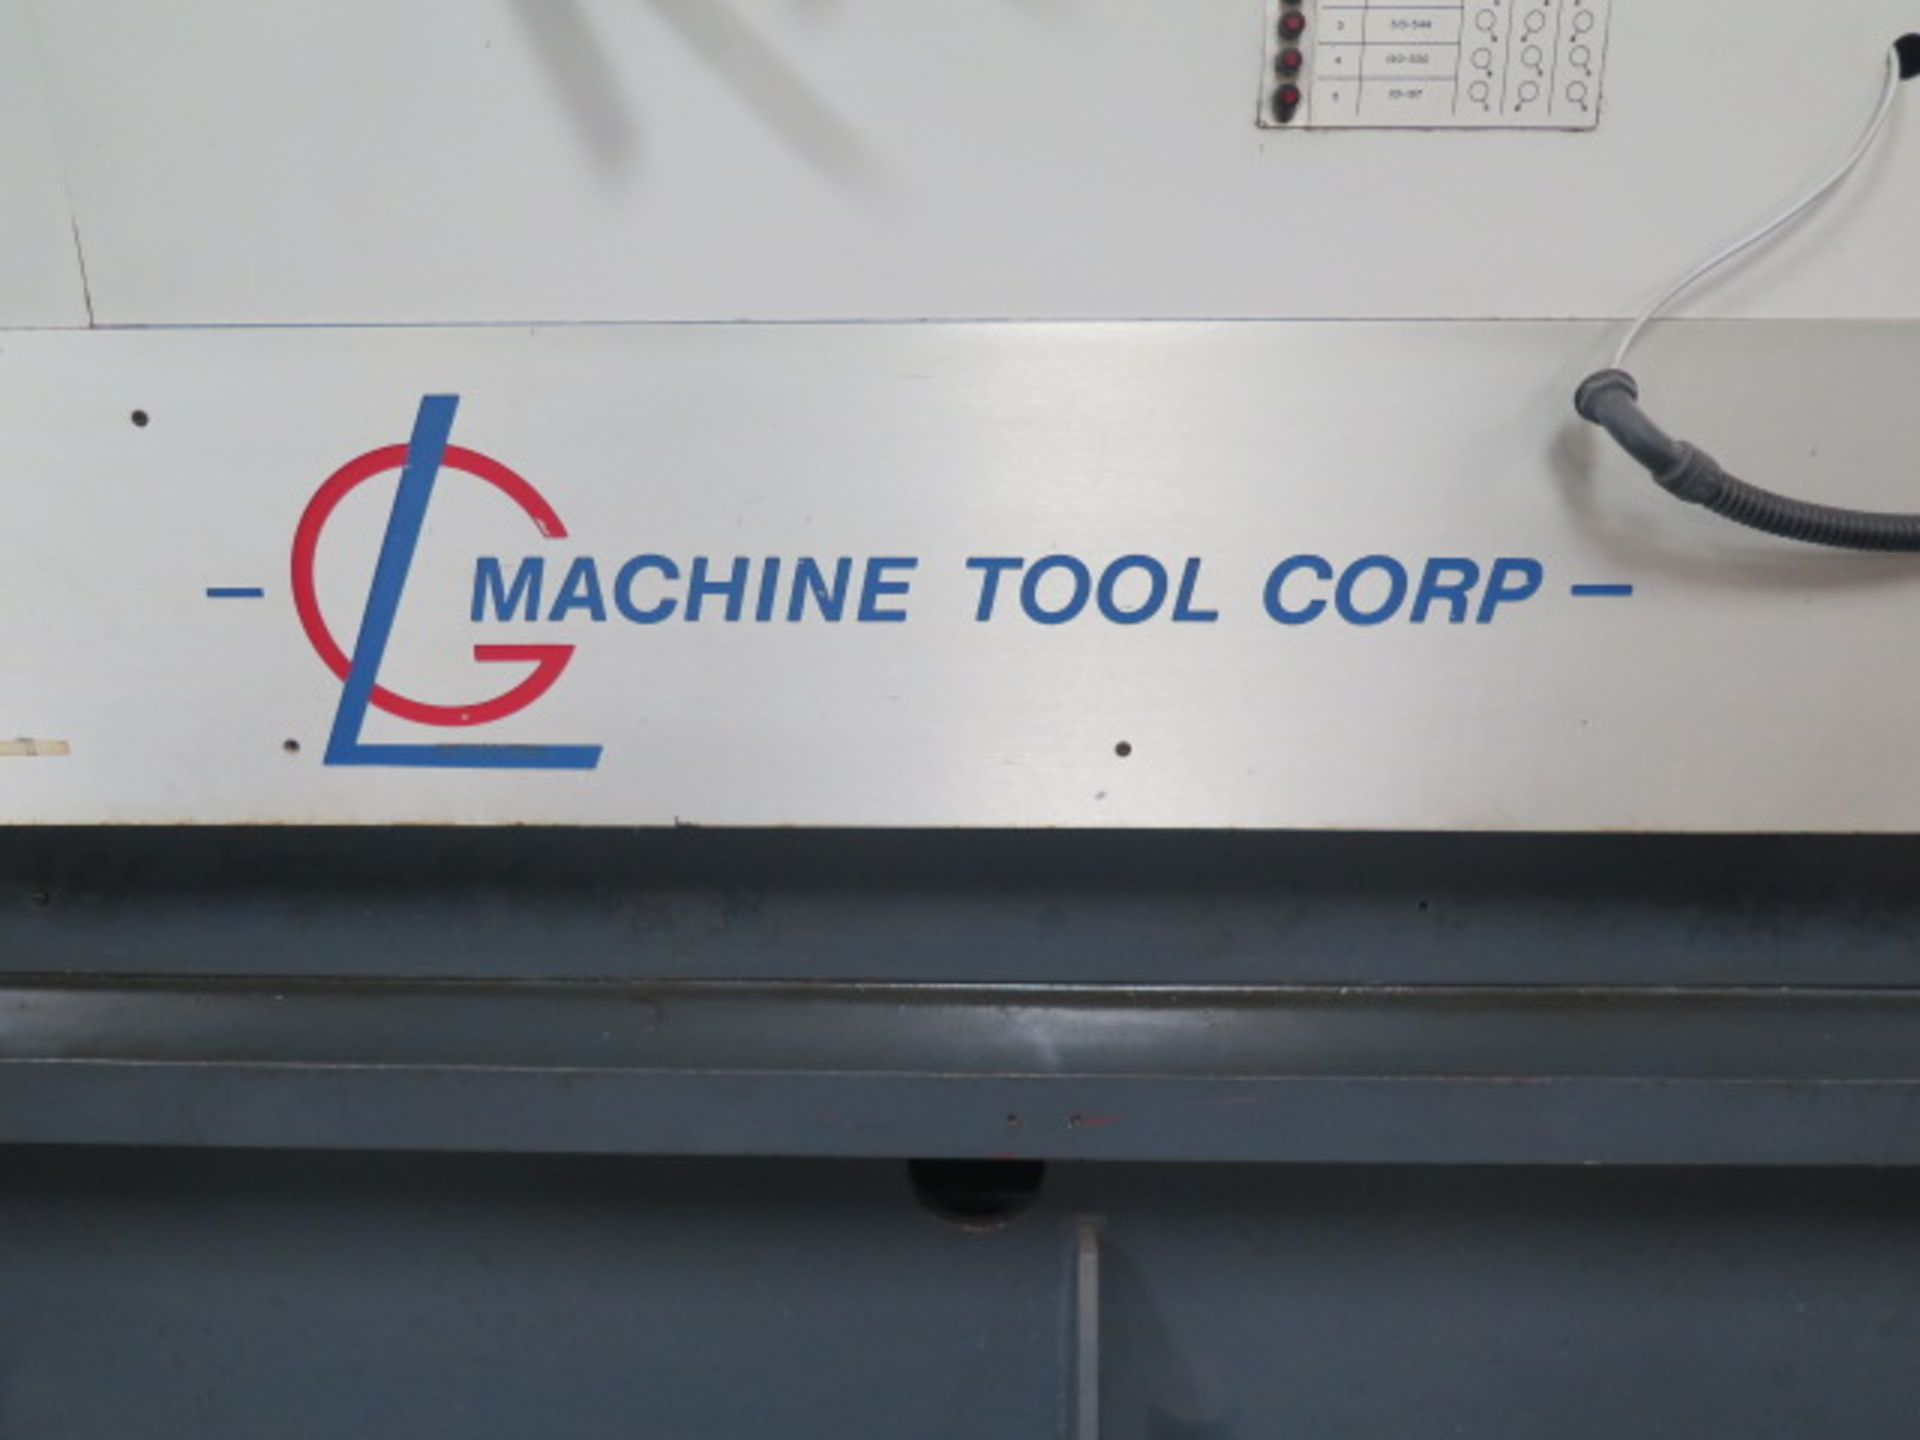 Laker-Craven-100 CNC Deep Hole Drilling Machine s/n 1241 w/ Fanuc Power MATE Controls, SOLD AS IS - Image 3 of 41